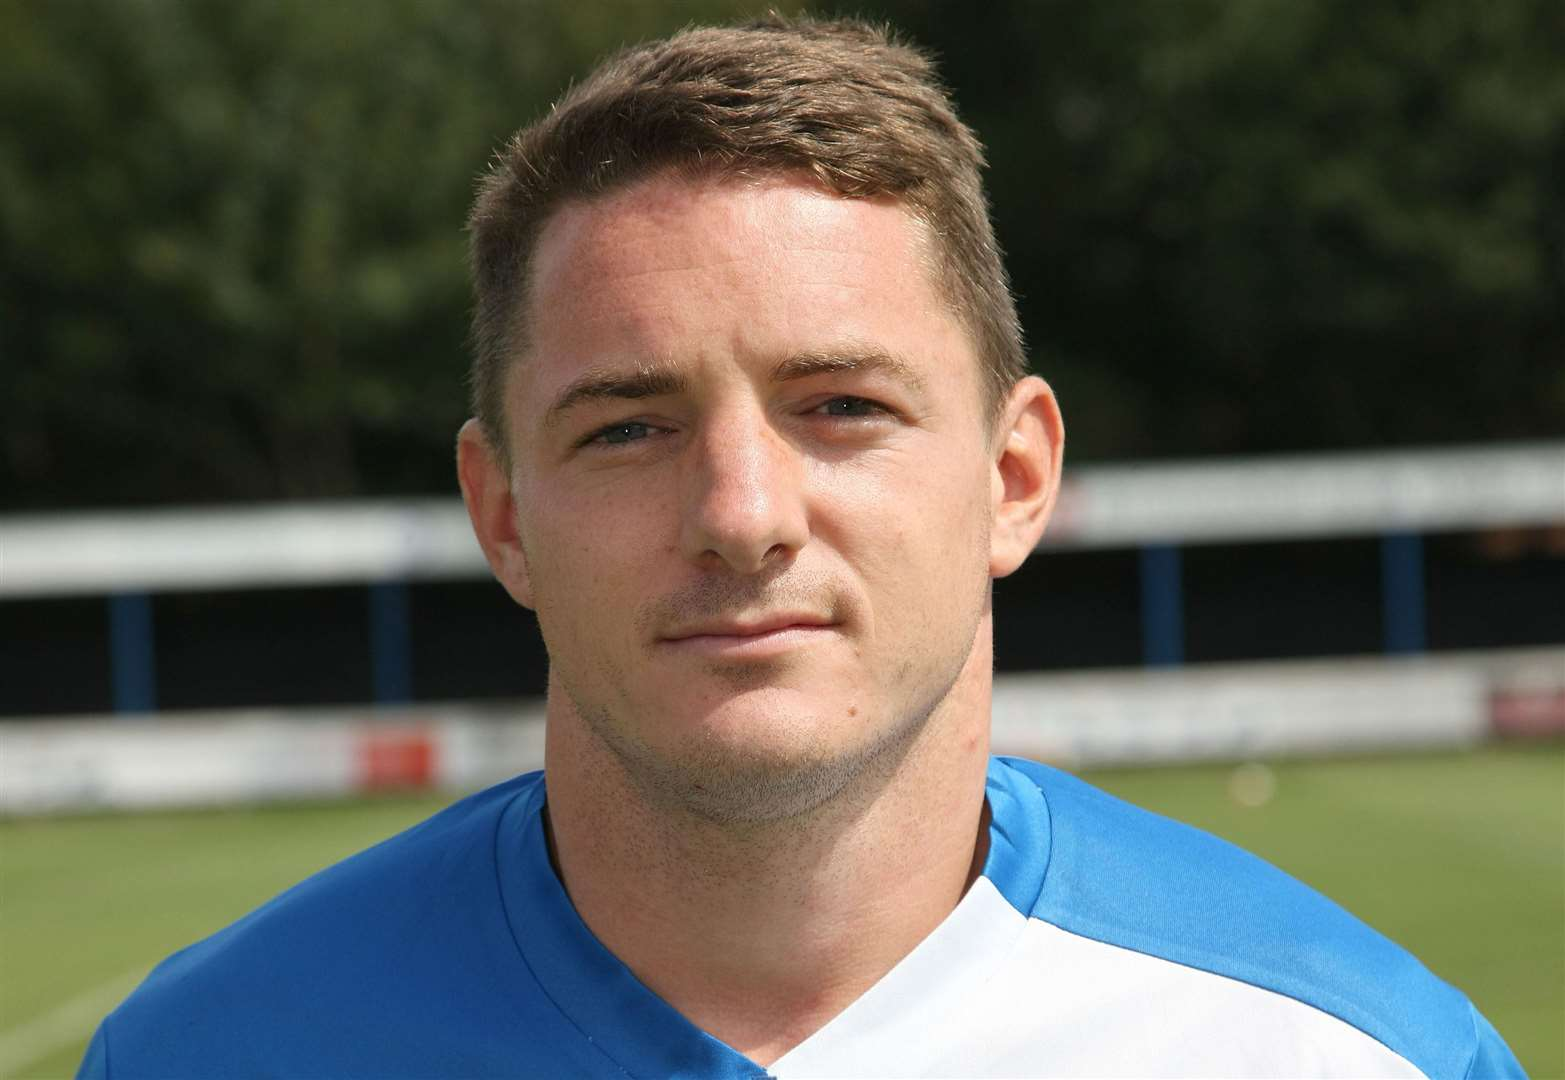 Hughes' fly-by helps Bury Town to bag another three points